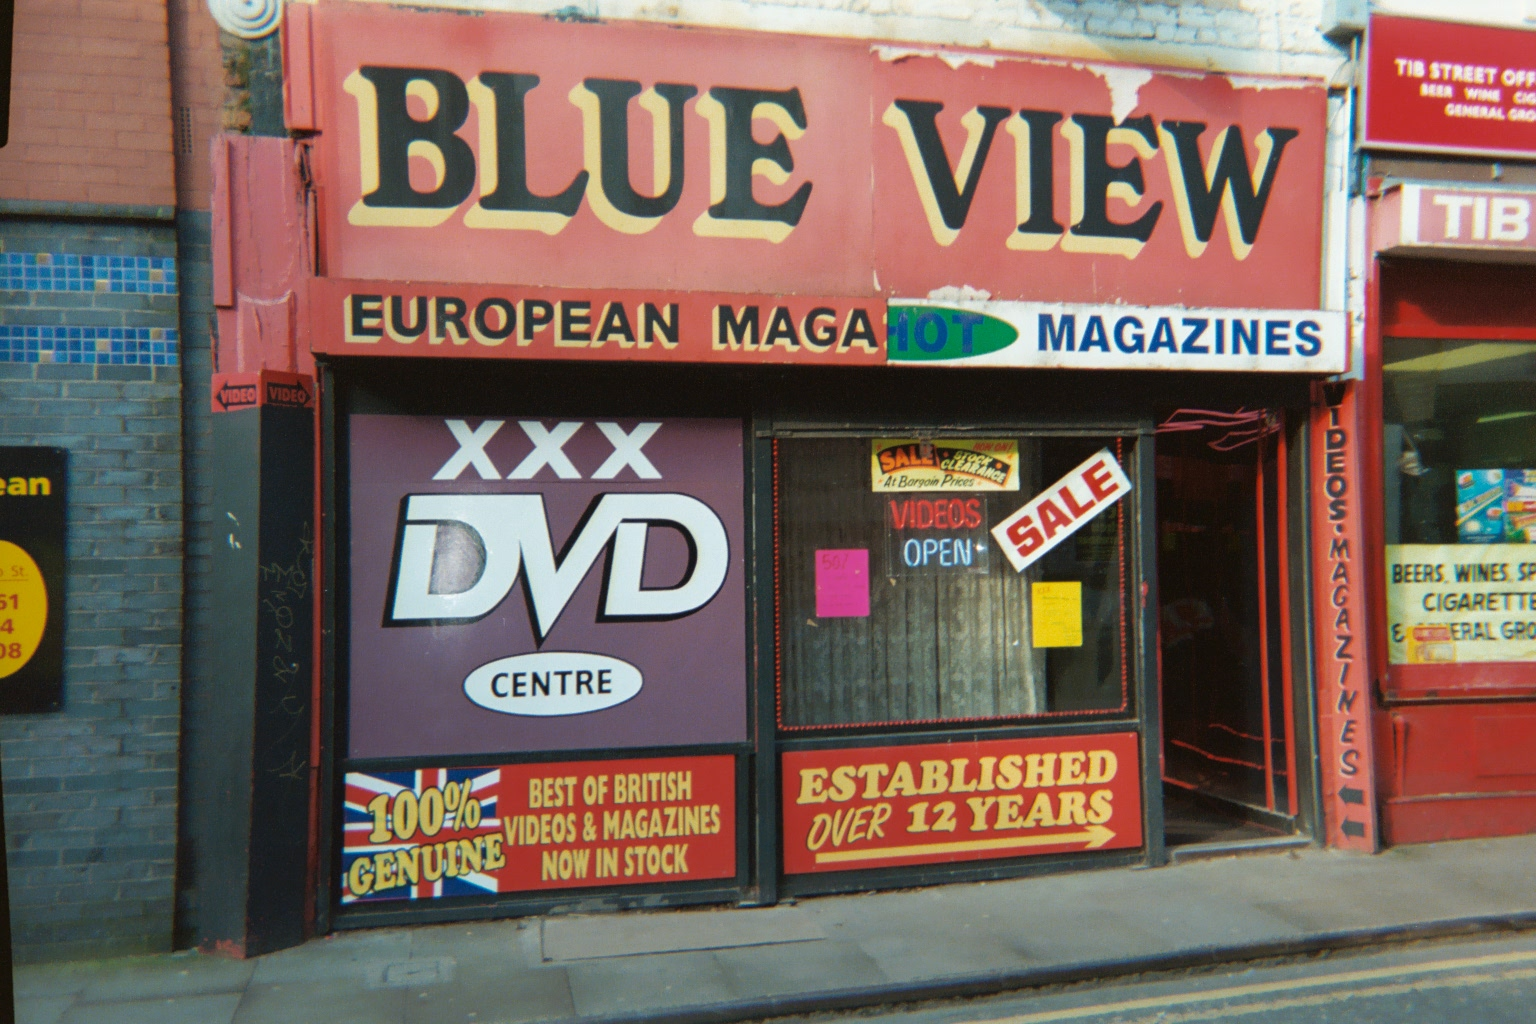 Blue View Sex shop on Tib St, Manchester